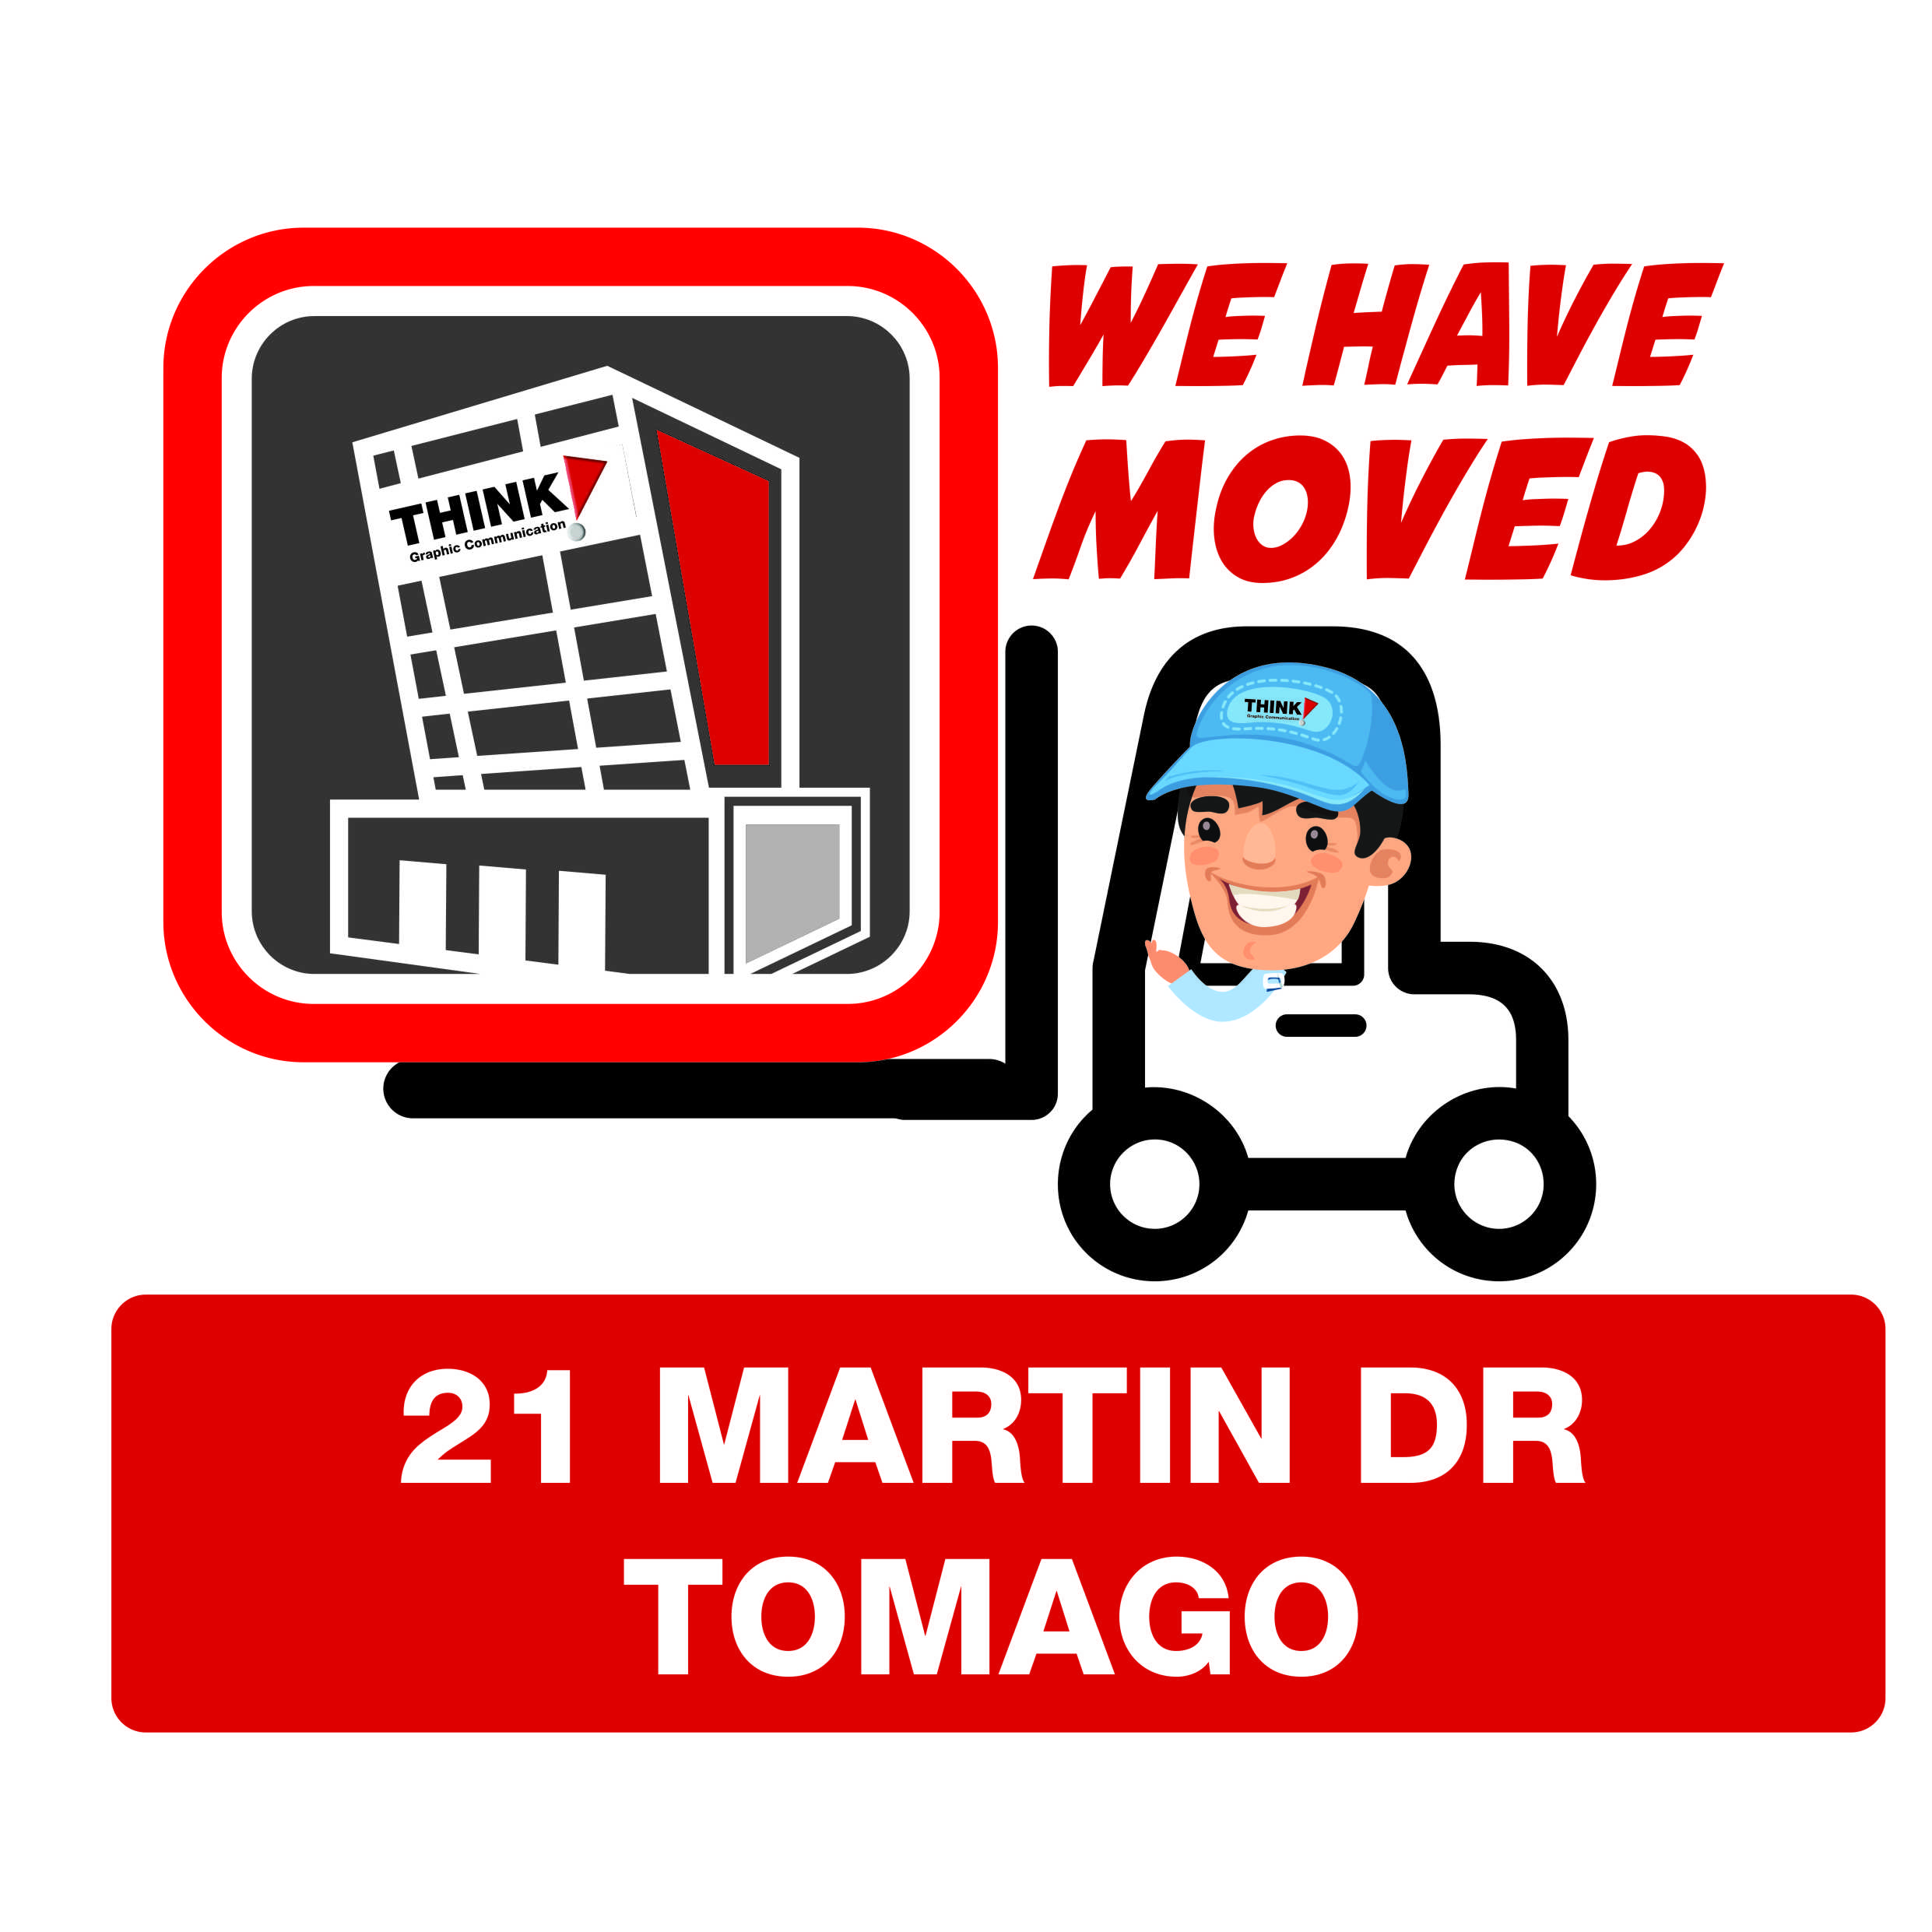 Think have moved to 21 Martin Dr Tomago